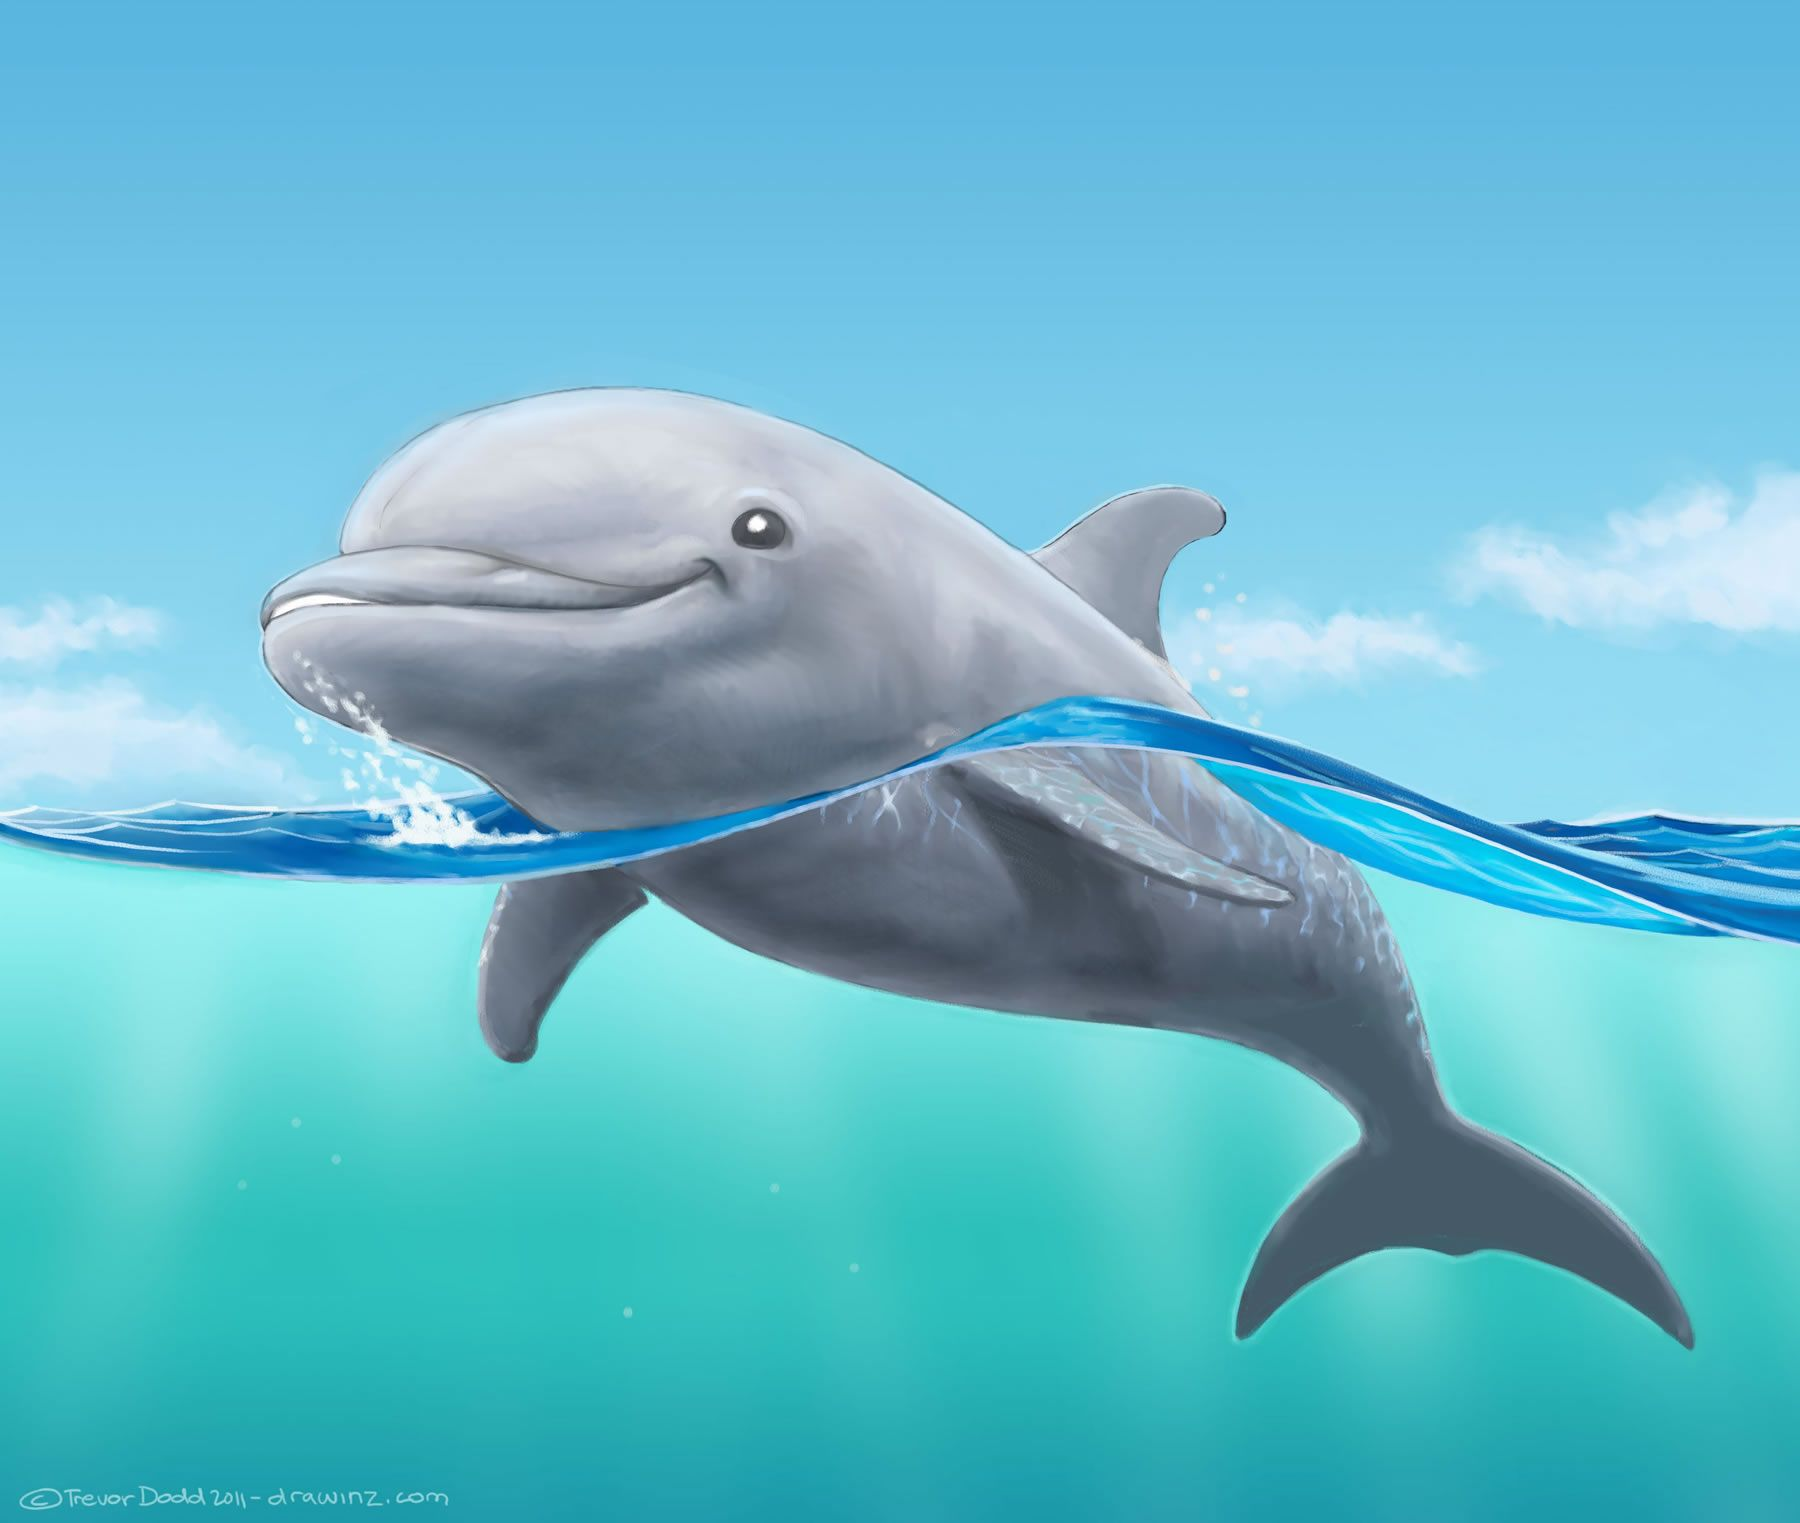 New drawing of a dolphin Drawinz Dolphin painting